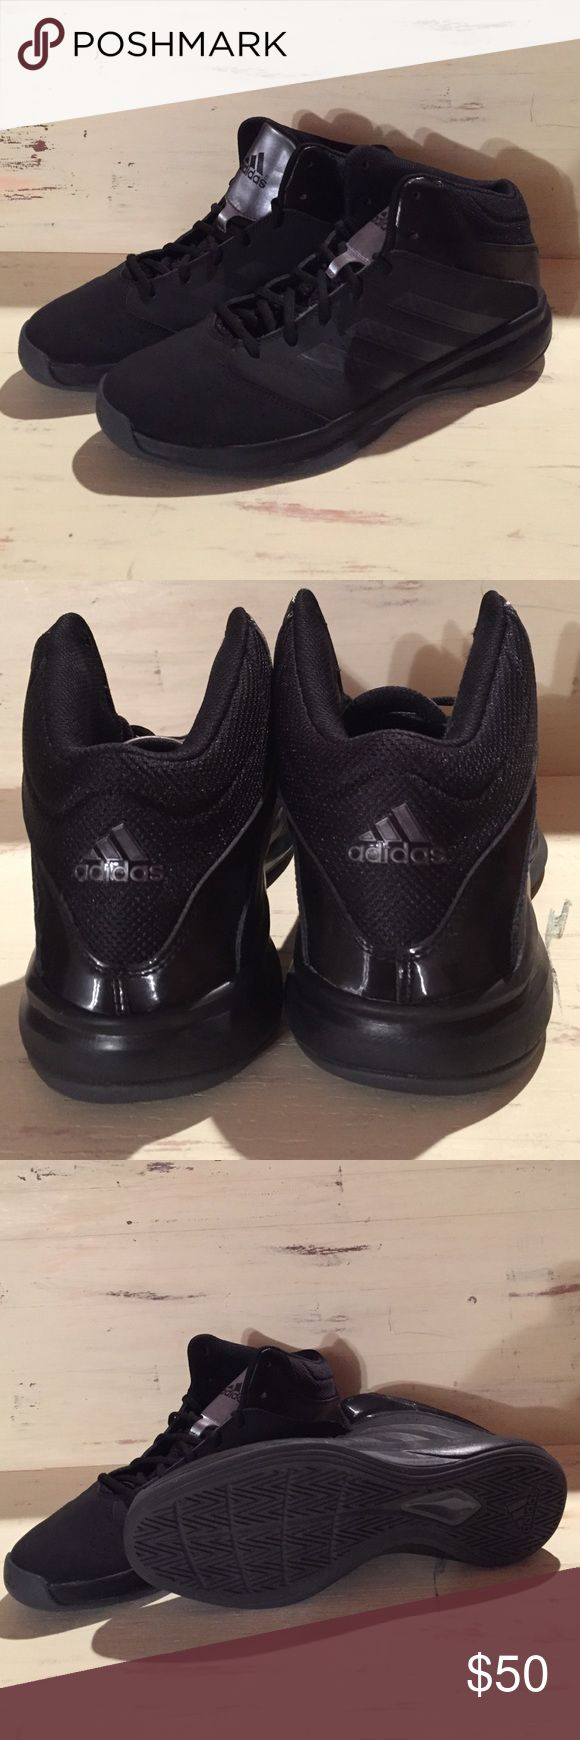 Adidas basketball shoes Like new, worn twice. In great condition. Men's Adidas basketball shoes. Black on black with silver on the tongue. 🏀I welcome all questions. Adidas Shoes Athletic Shoes